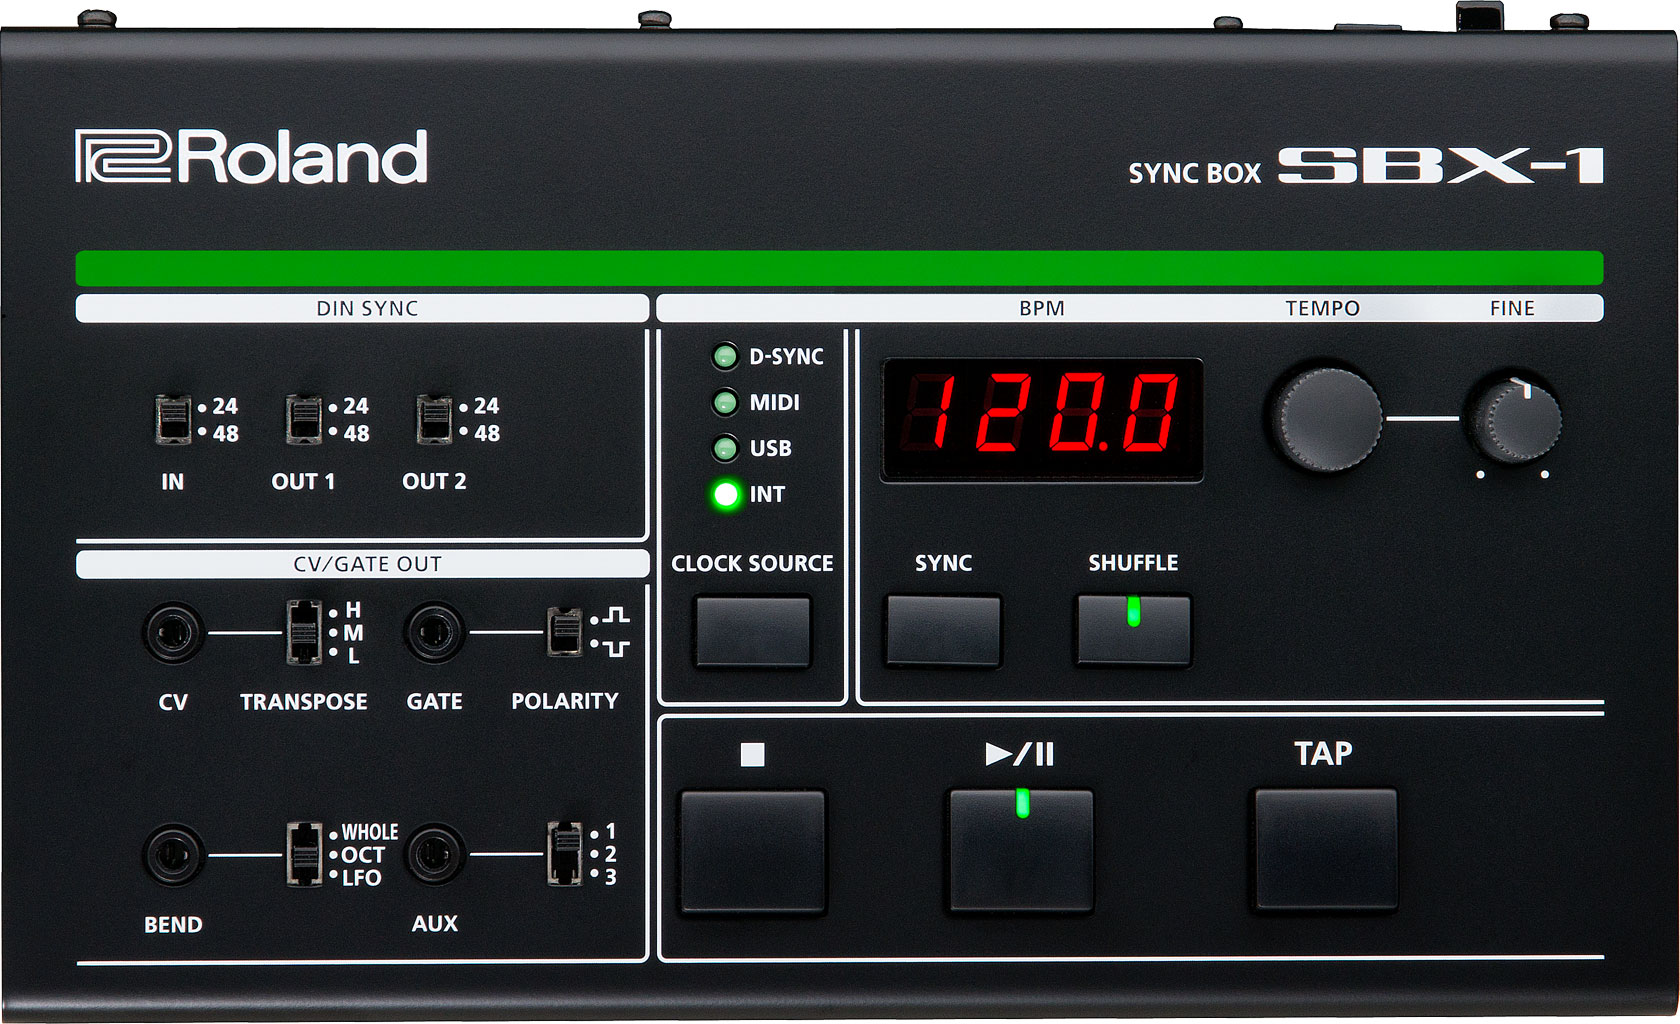 Roland Sbx 1 Sync Box Auxilliary Runs Down To A Metal Junction That Connects